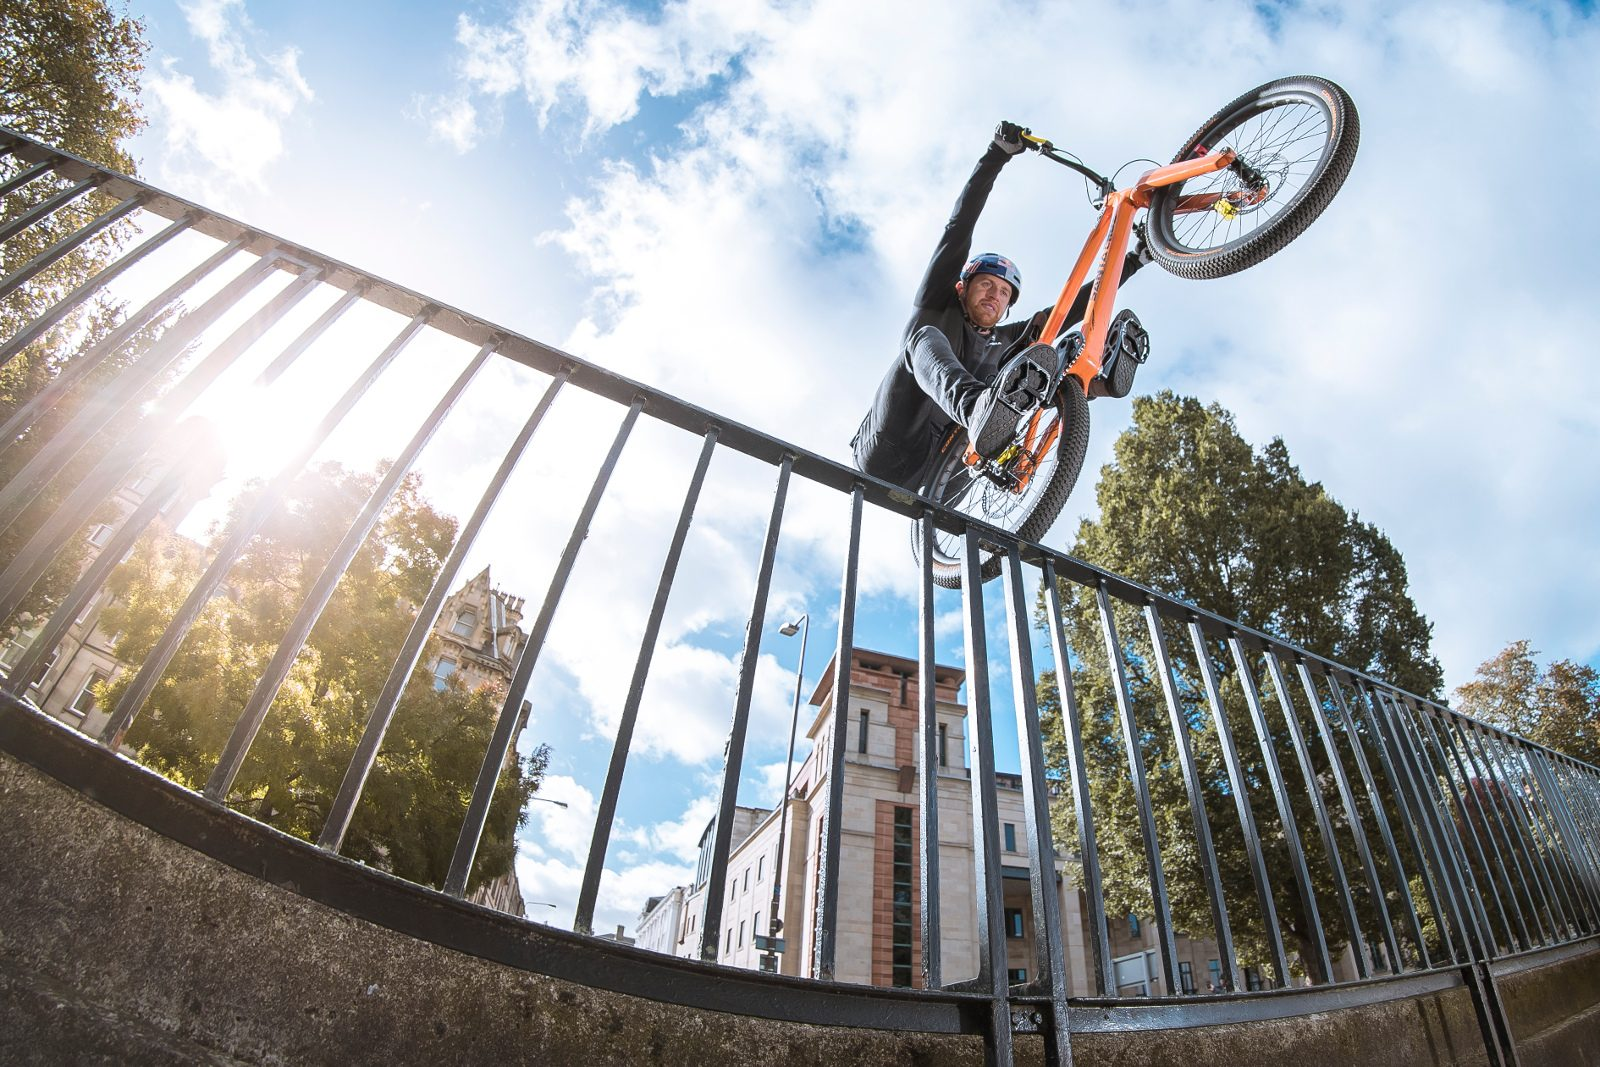 Crankbrothers_STAMP7_Danny_MacAskill_by_Dave-Mackison_5-1600x1067.jpg